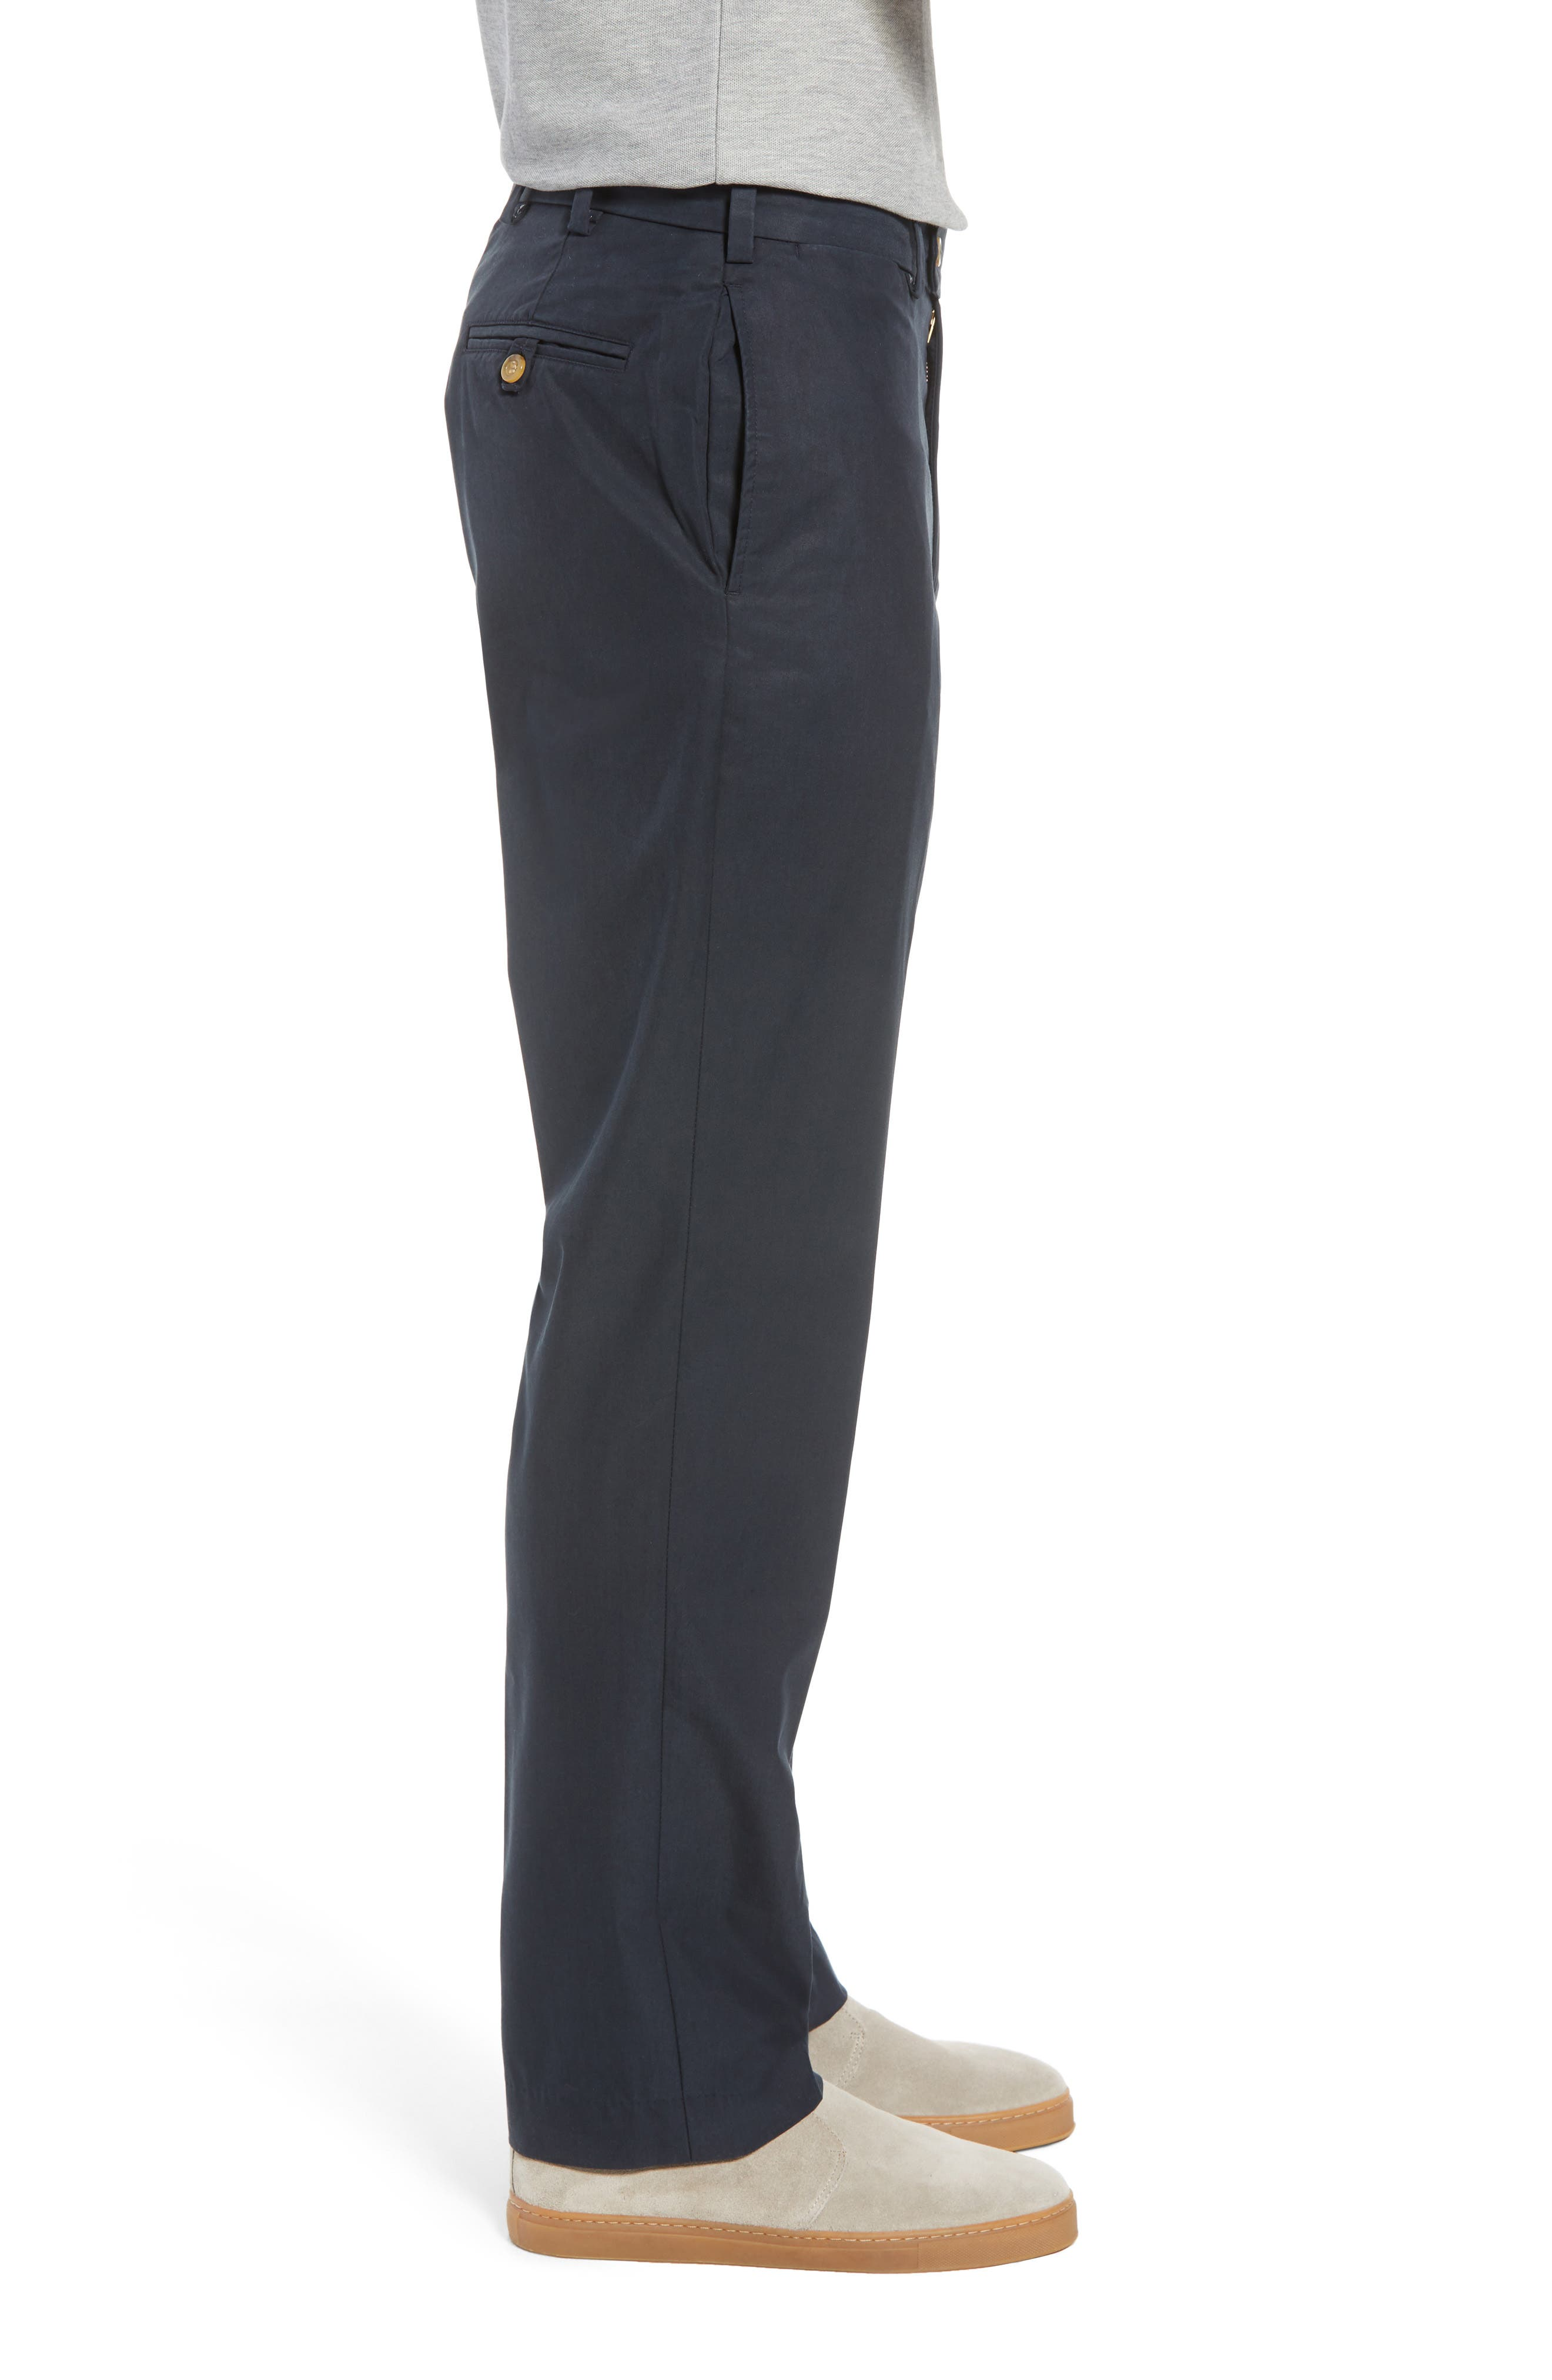 M2 Classic Fit Flat Front Travel Twill Pants,                             Alternate thumbnail 3, color,                             Navy